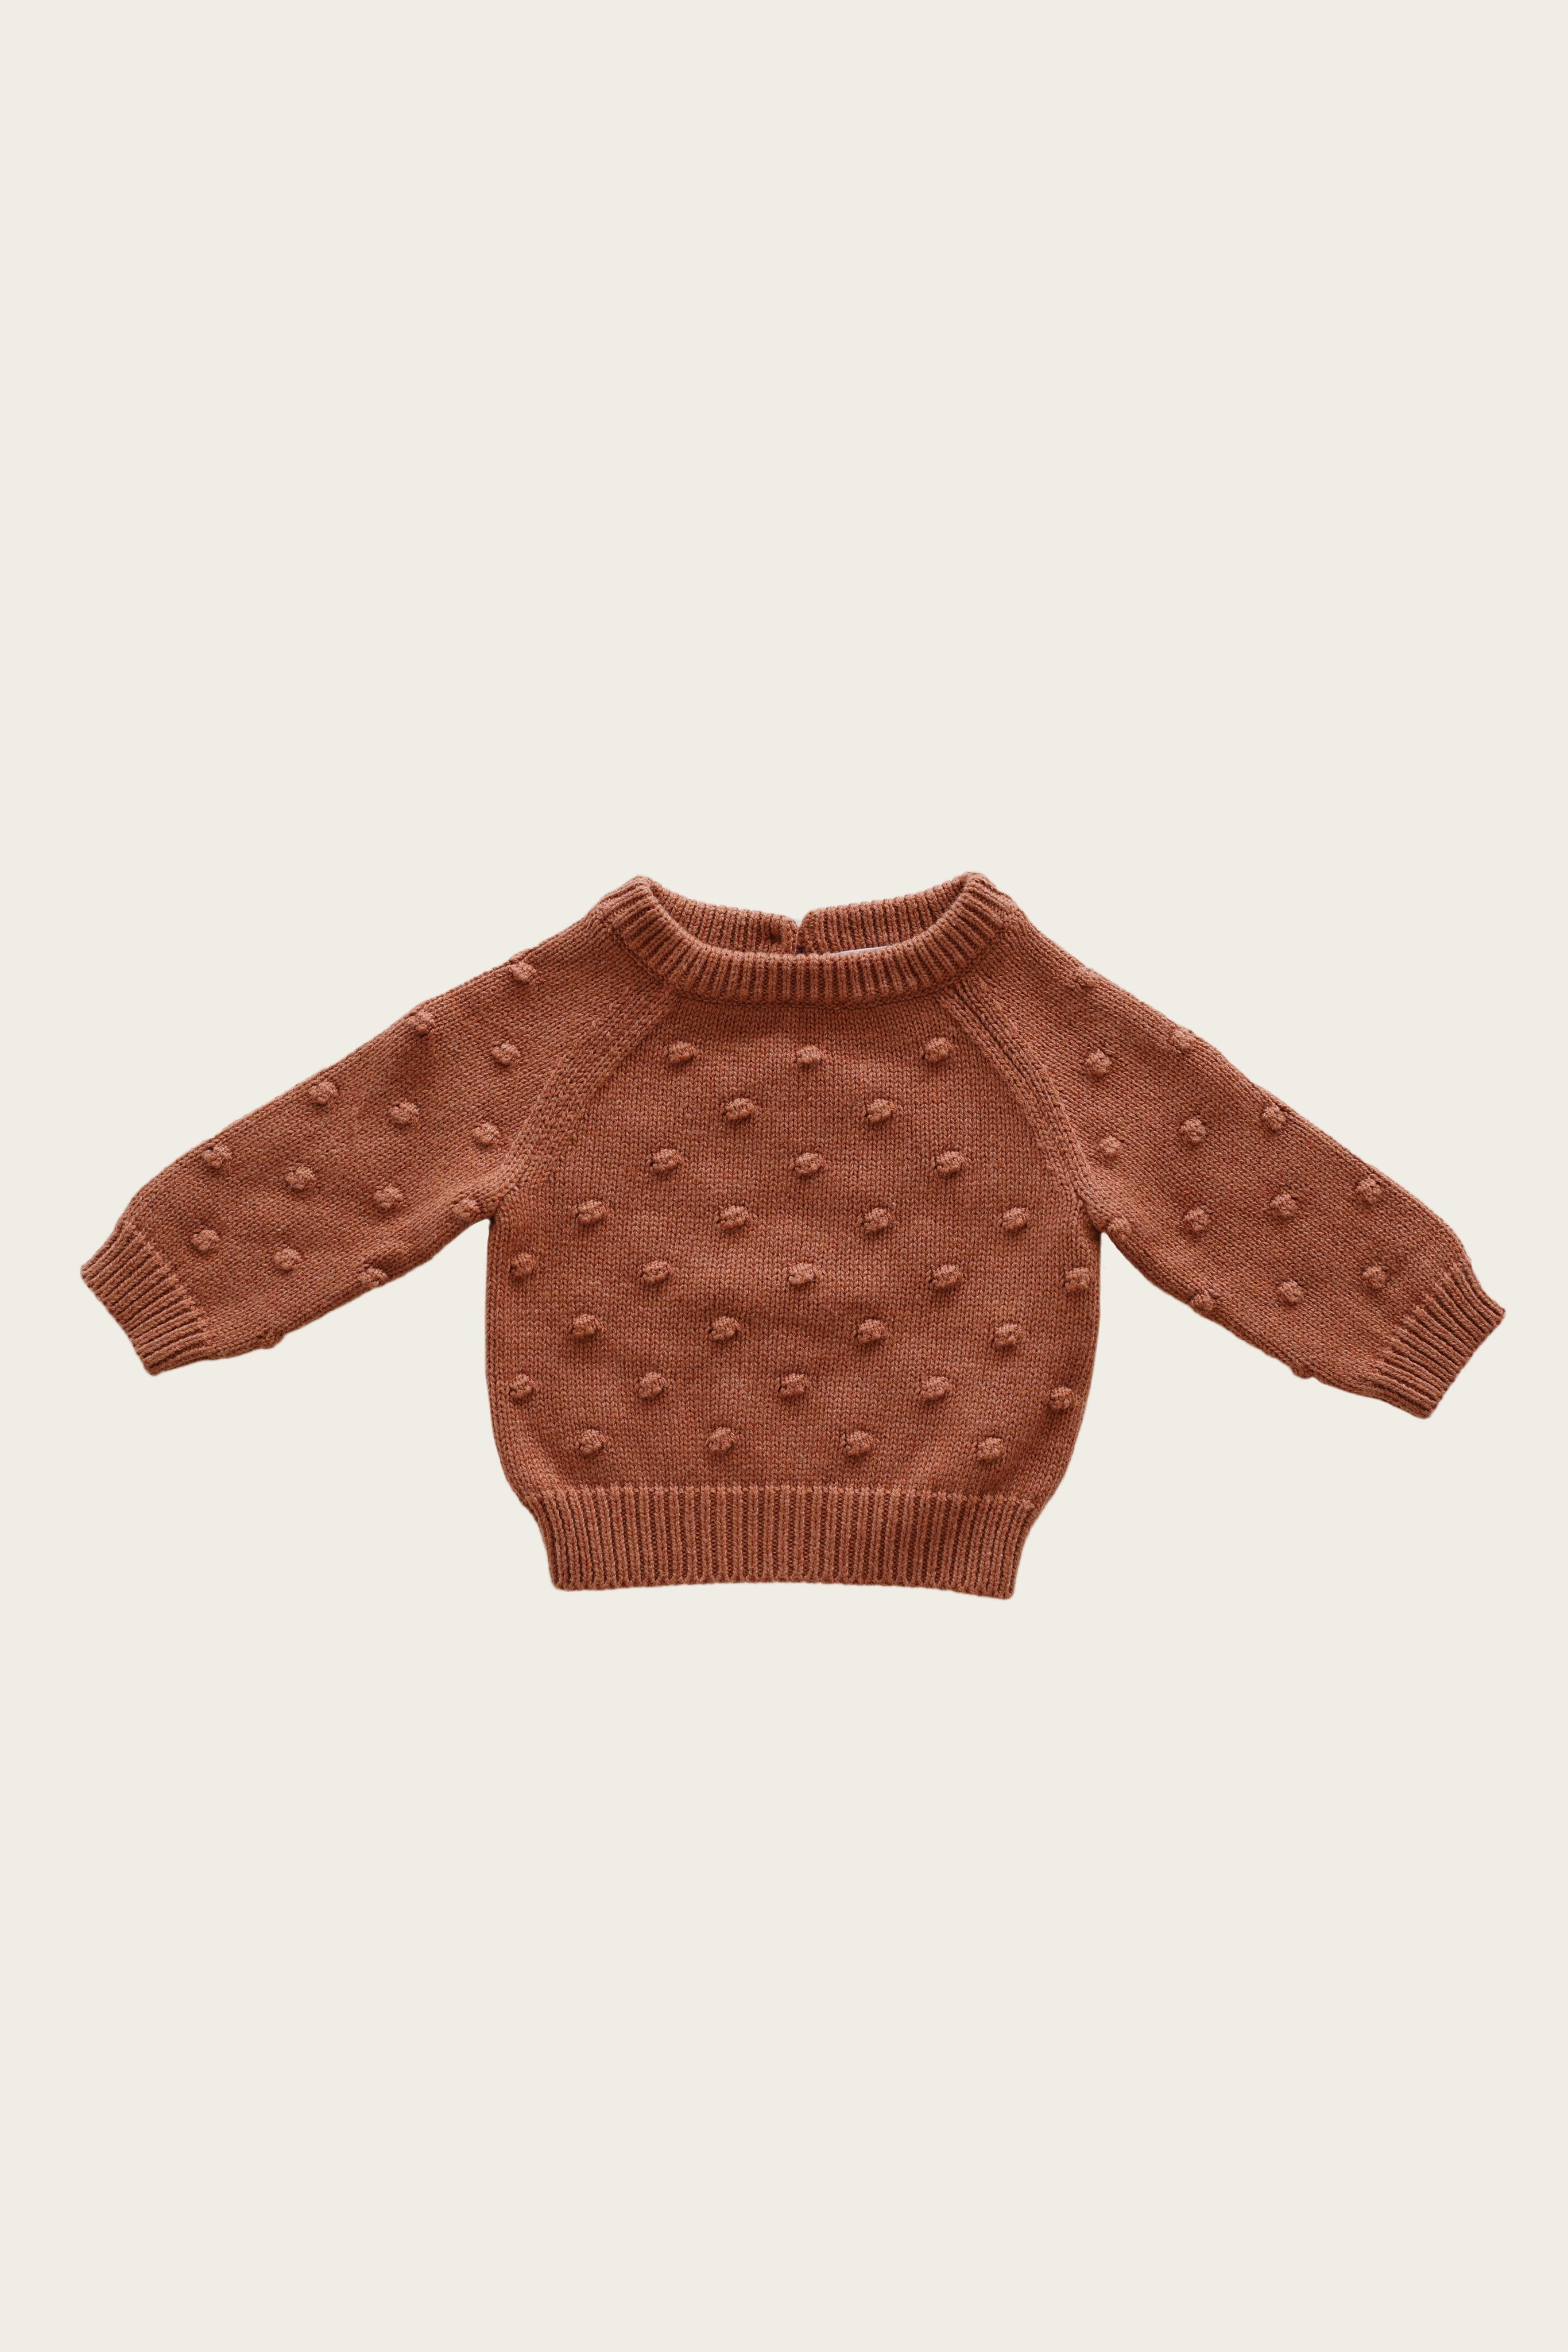 Dotty Knit - Copper Marle